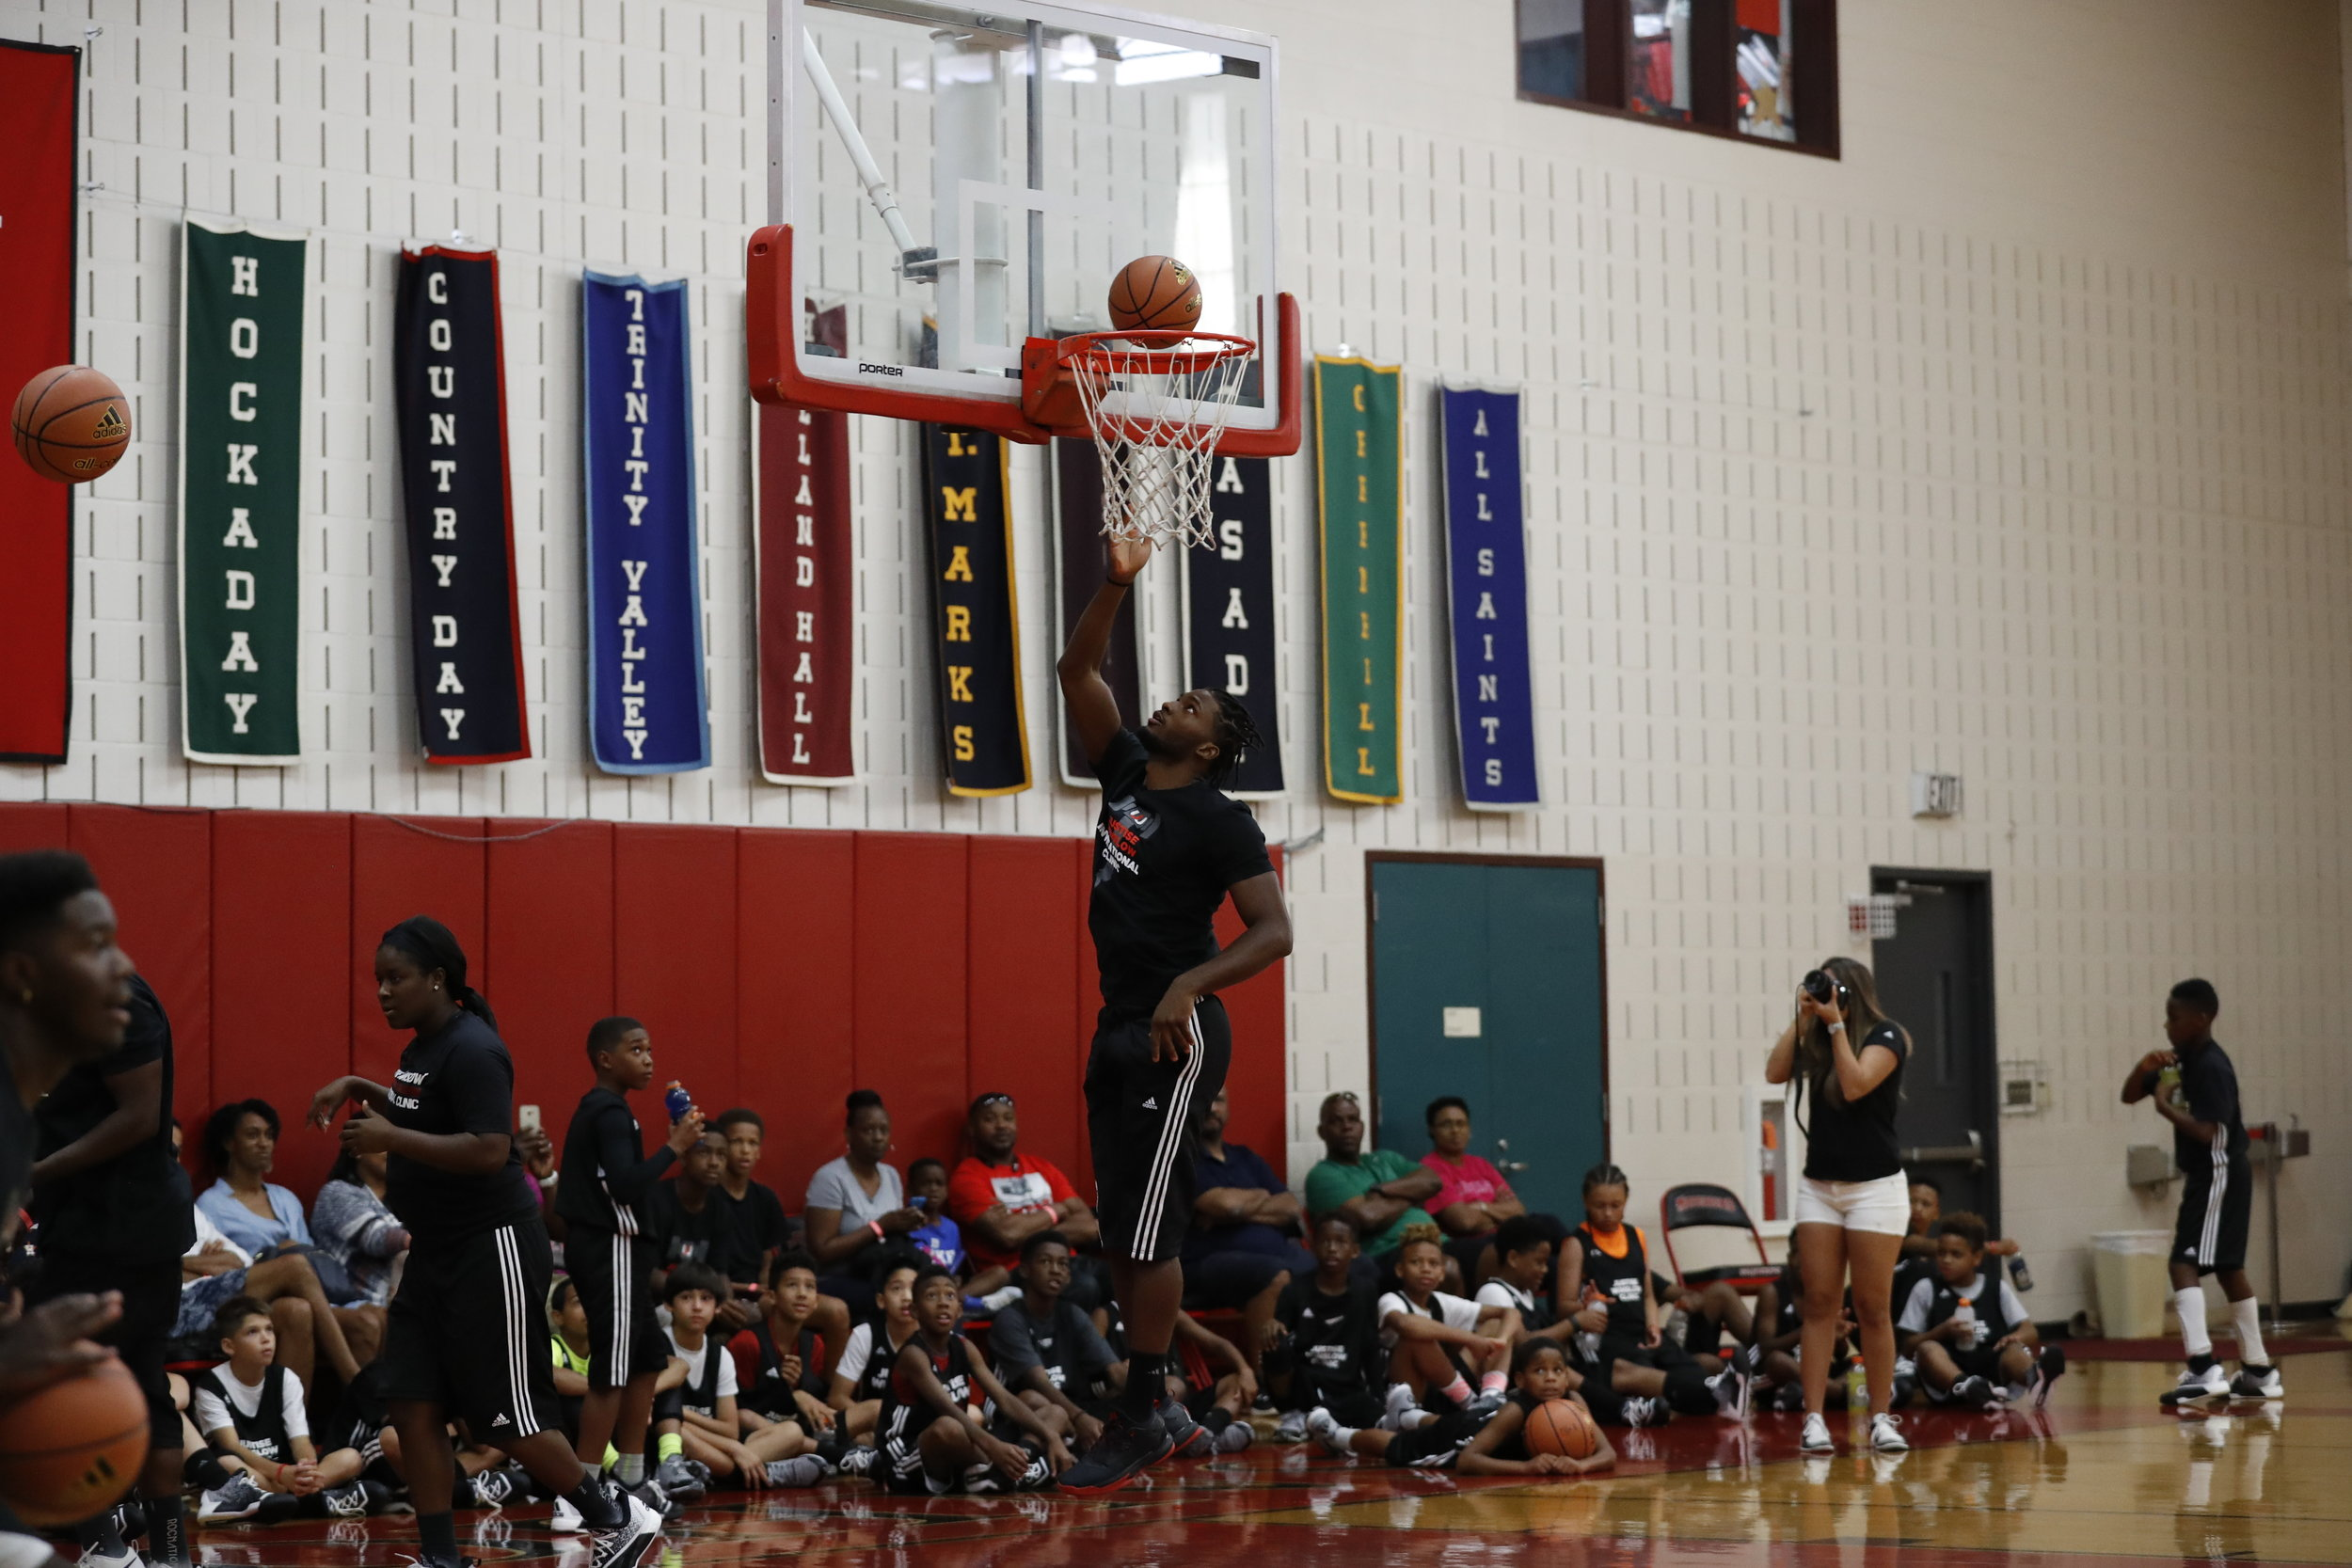 Justise Winslow Invitational Camp 018.jpg